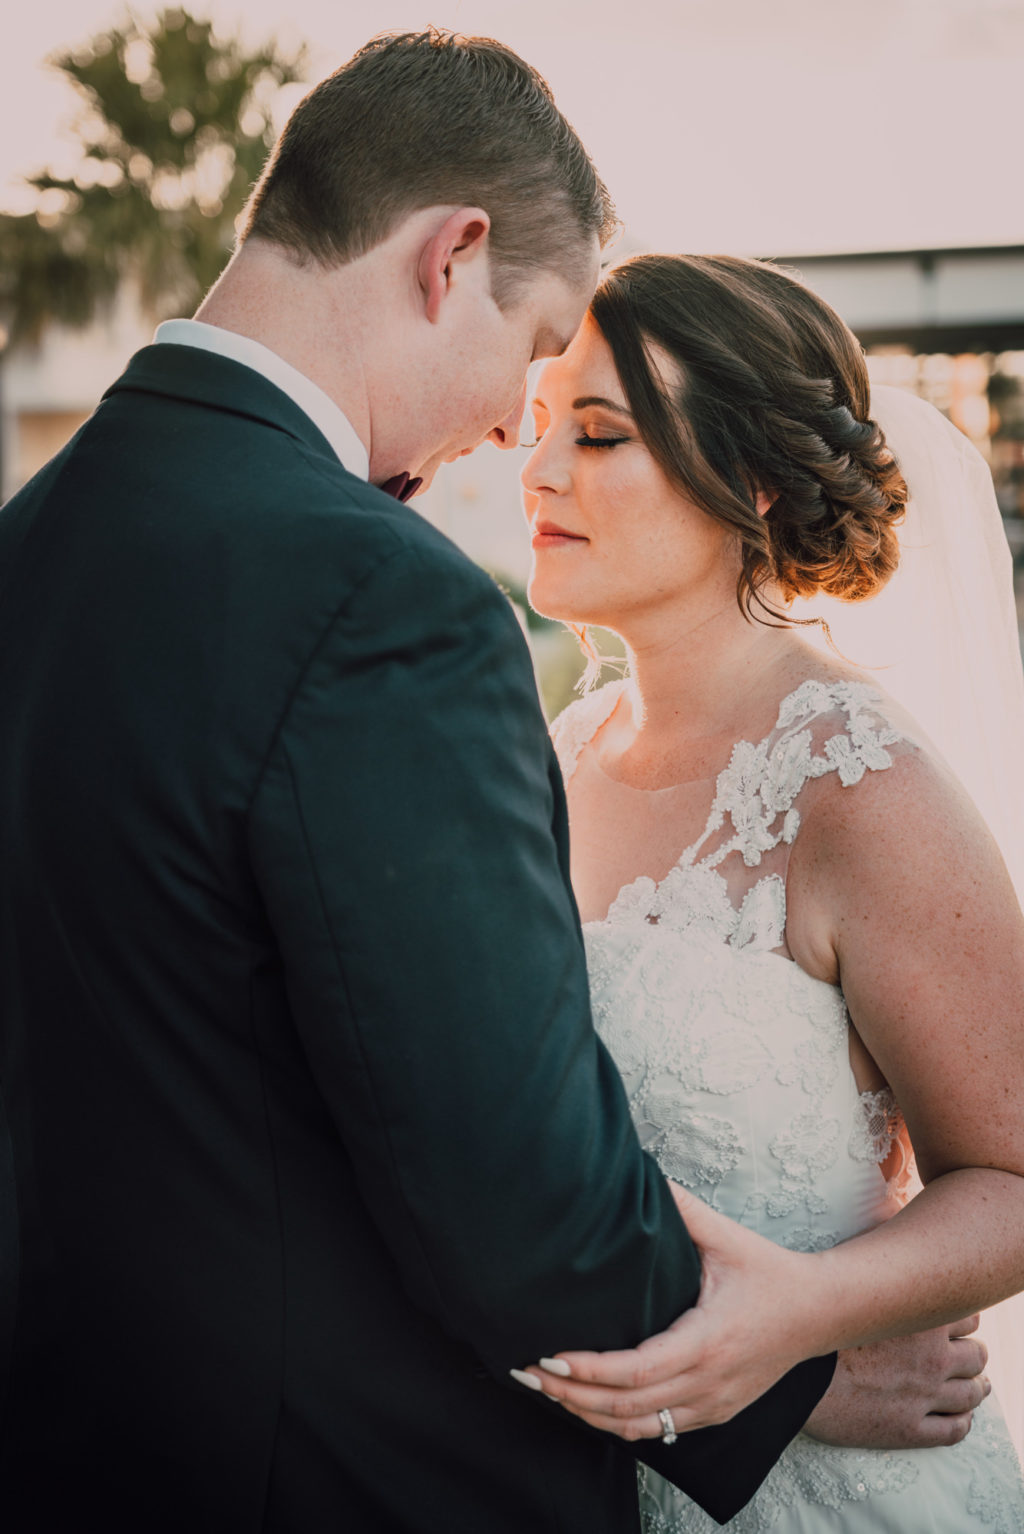 Bride and Groom Sunset Portrait at Tampa Heights Rooftop Wedding | Tampa Wedding Photographer Bonnie Newman Creative